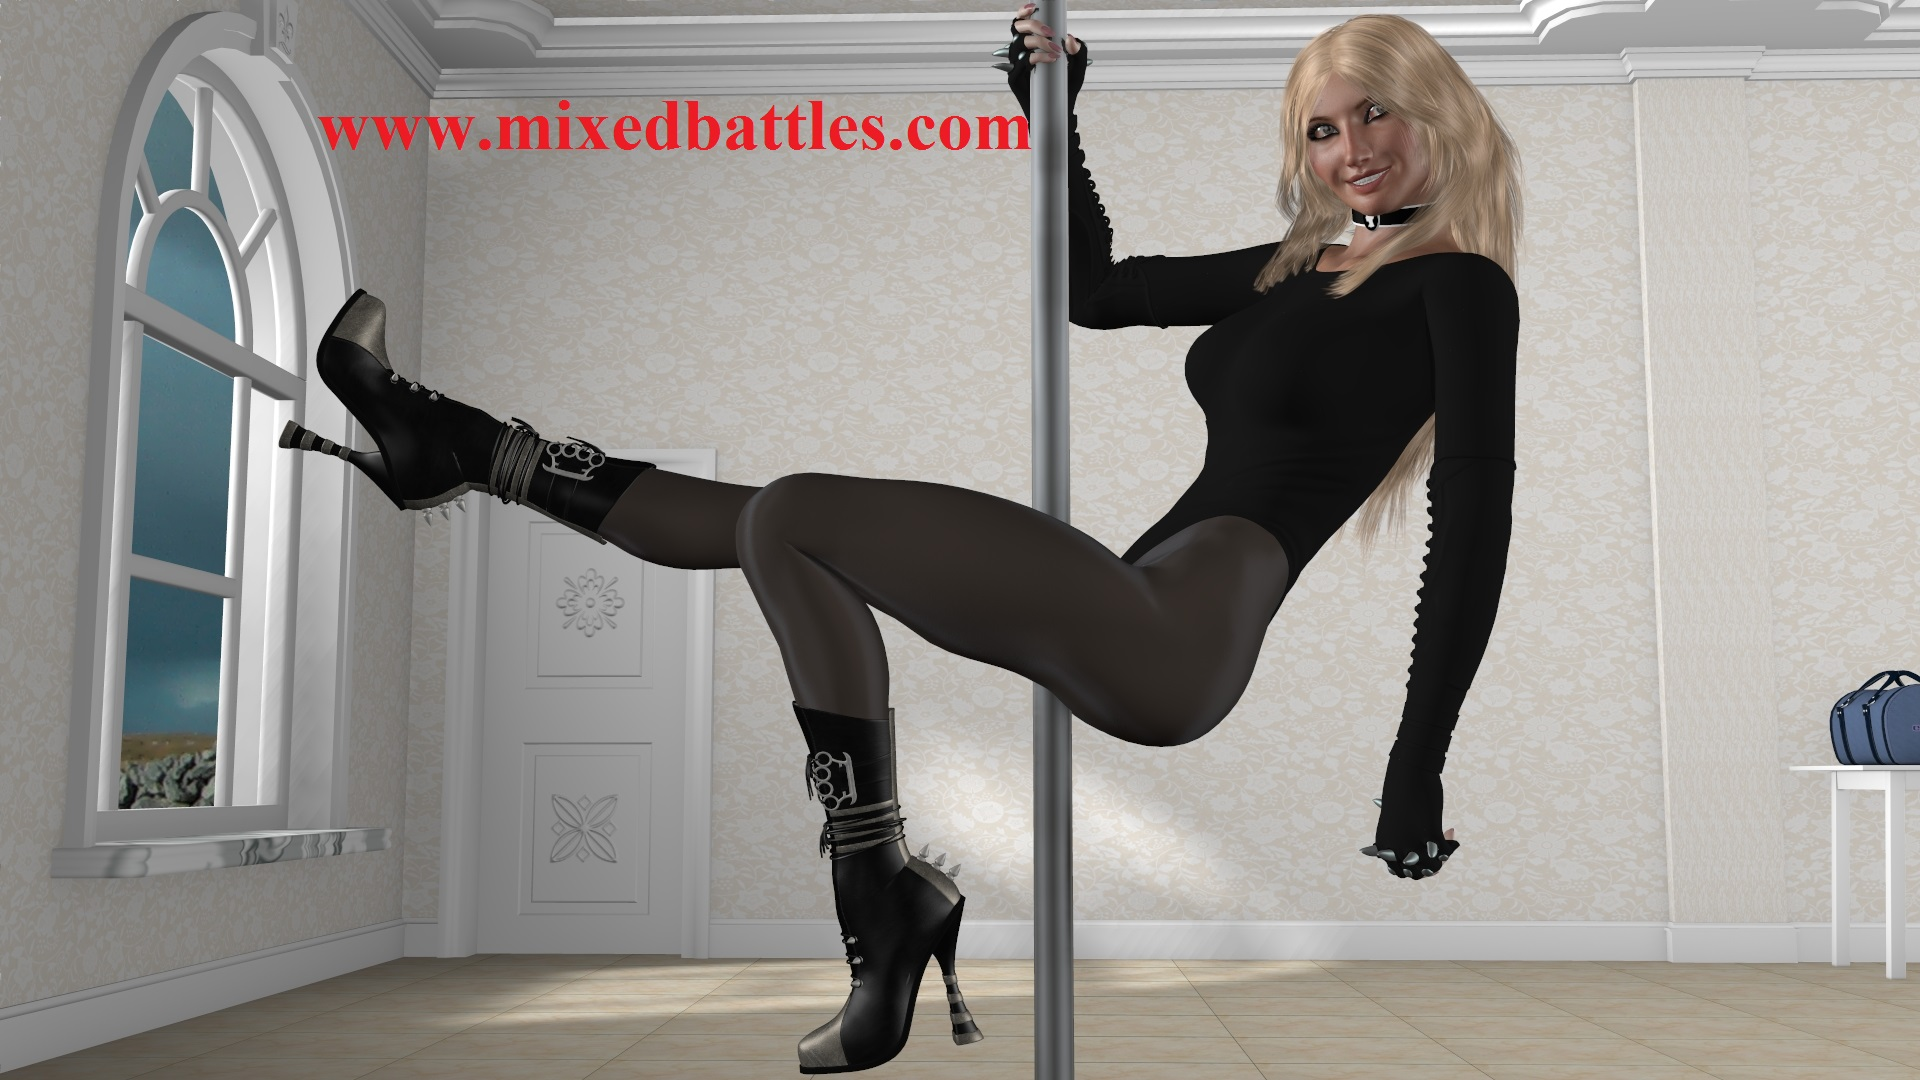 deadly pole dancer dominatrix